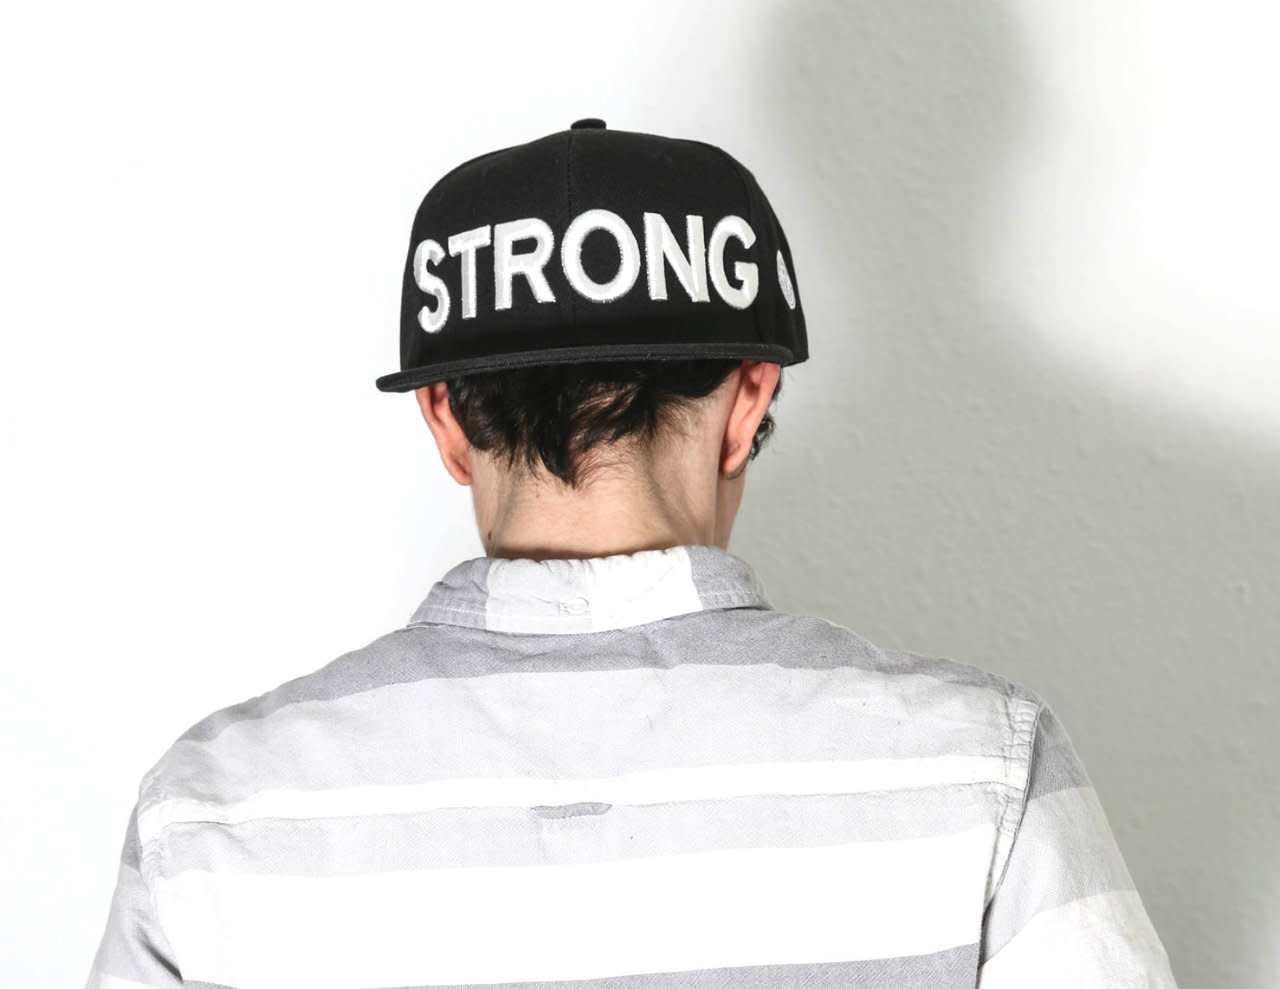 Strong Athletic STRONG Embroidered Hat